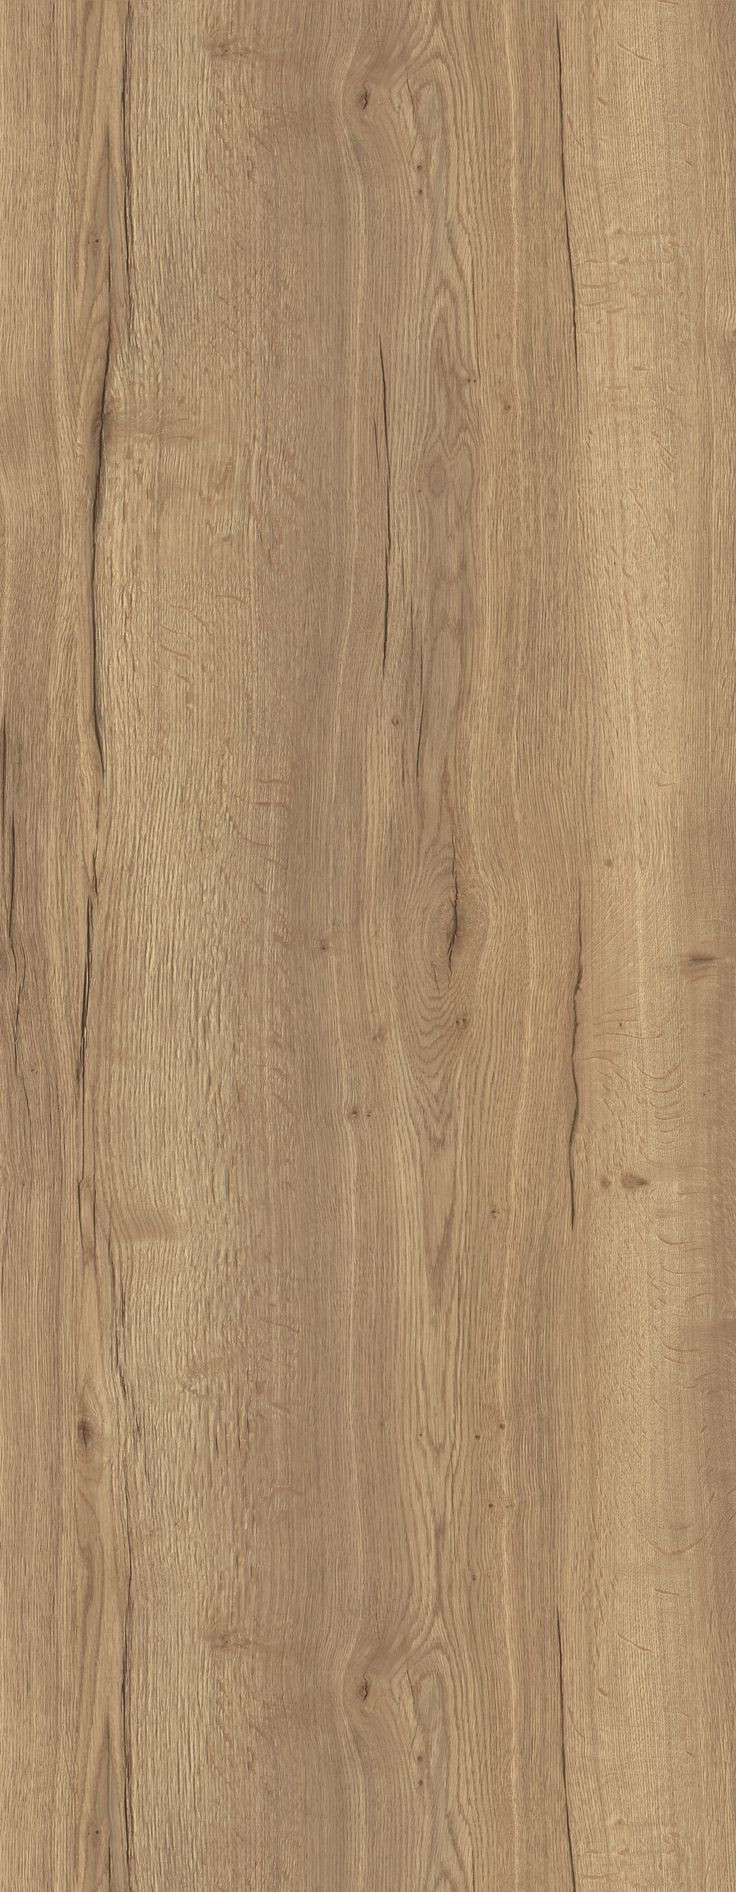 engineered hardwood flooring clearance closeout of 2324 best texture images on pinterest architectural materials with regard to teds wood working natural halifax oak is a rustic style decor in a natural sandy tone that beautifully replicates the appearance of solid oak